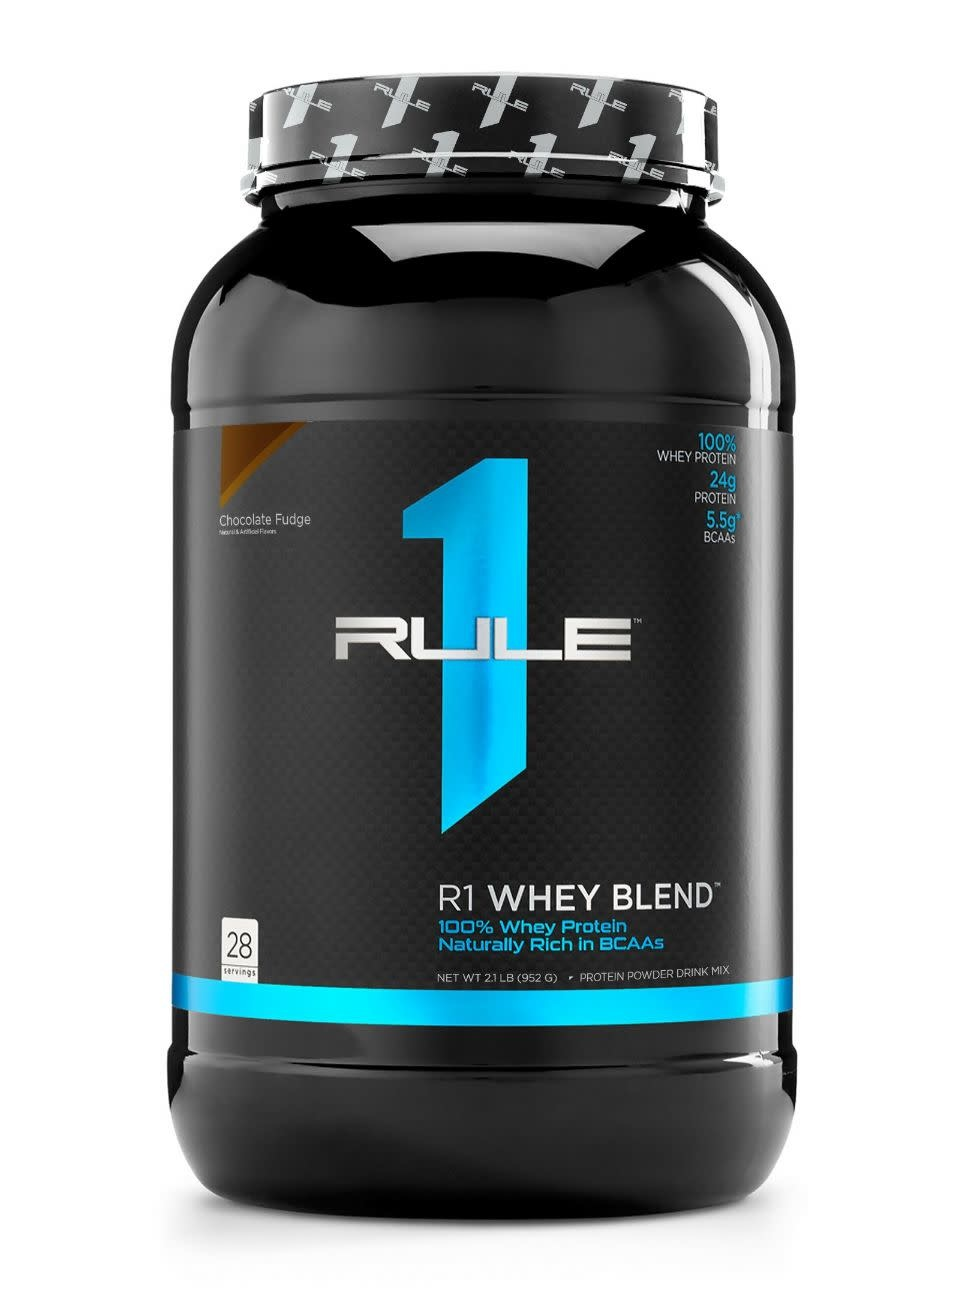 Rule 1 Rule 1 Whey Protein Blend 28 Serving